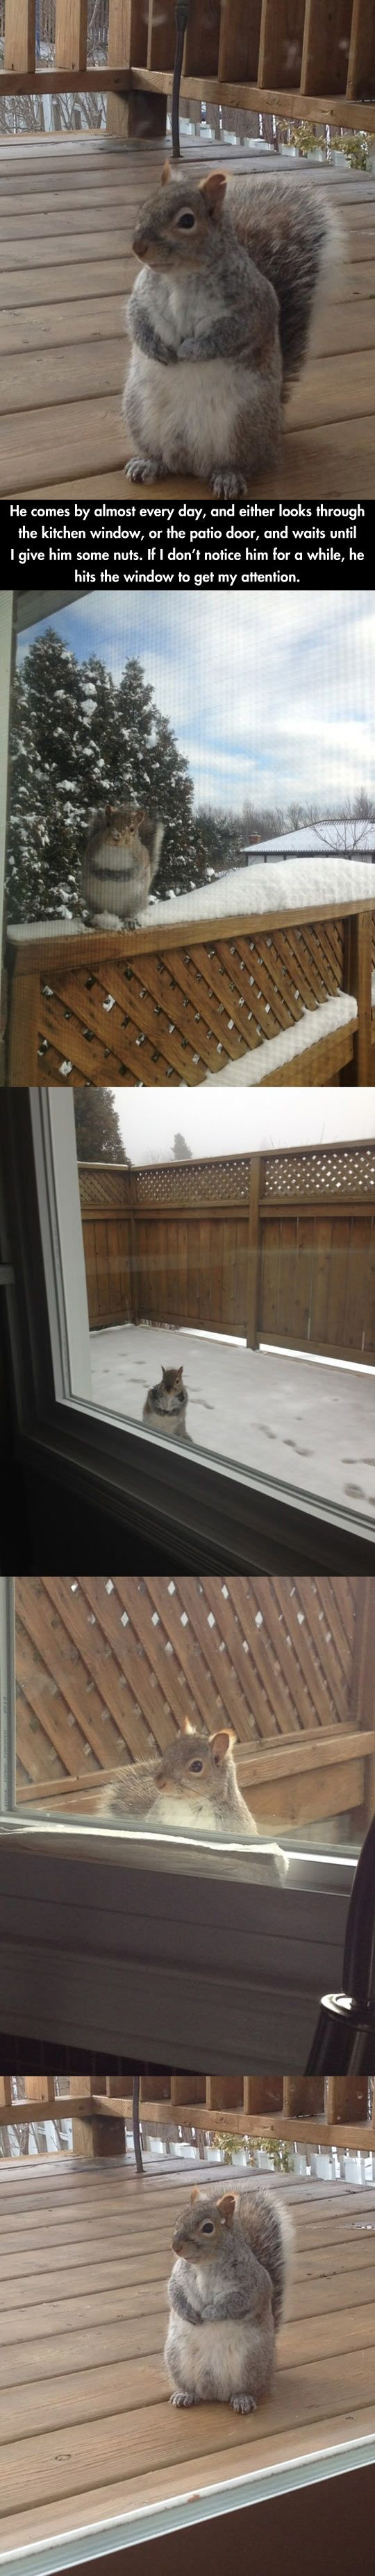 Squirrel who comes every day for nuts // funny pictures - funny photos - funny images - funny pics - funny quotes - #lol #humor #funnypictures